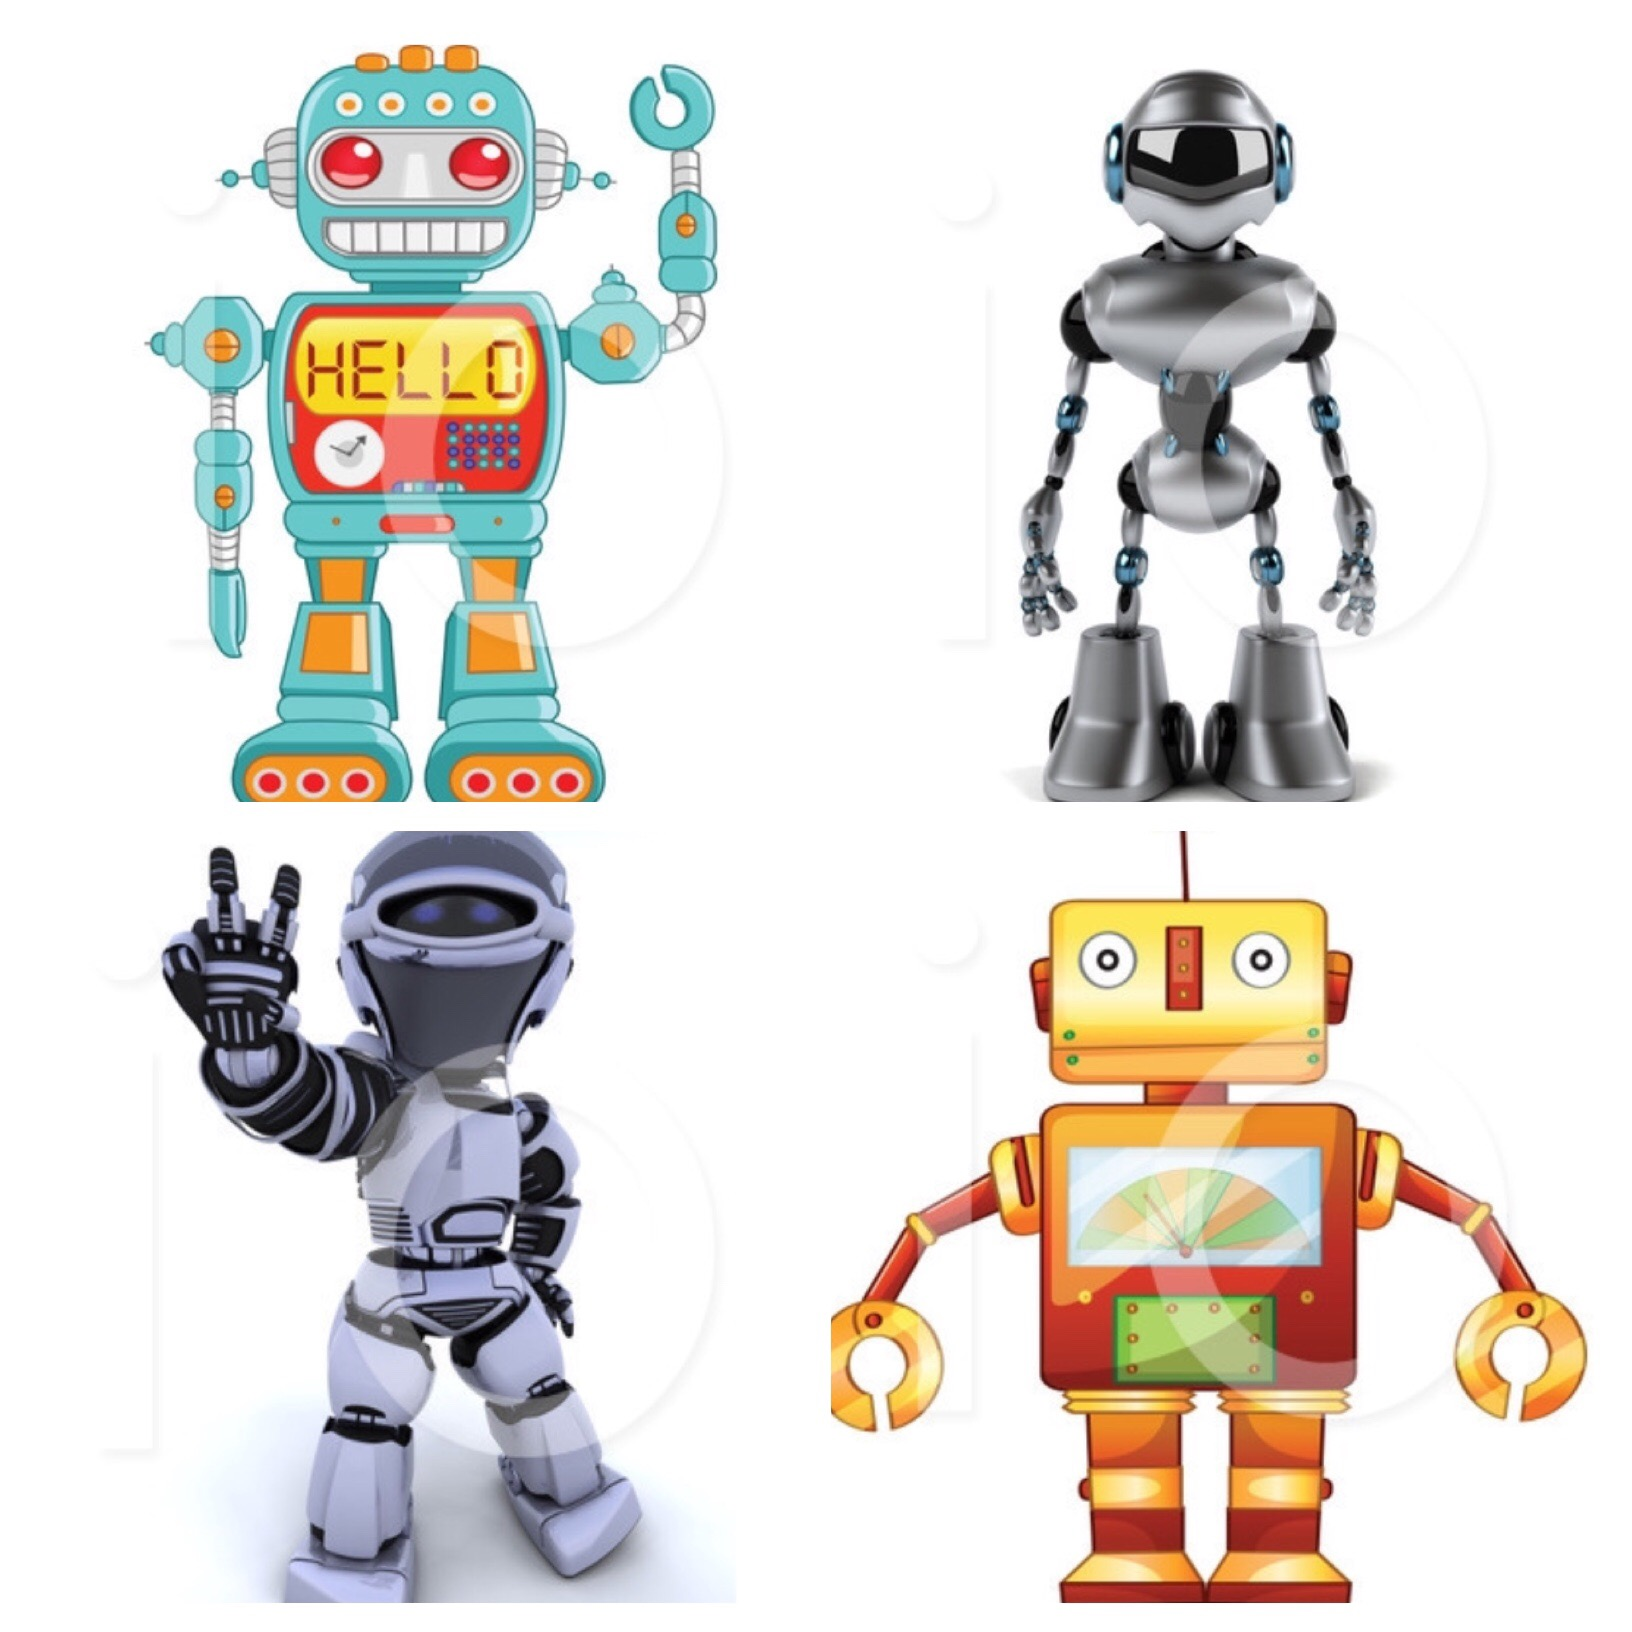 Why I'm Fascinated by Ai, Machine Learning, Big Data,, and Robots